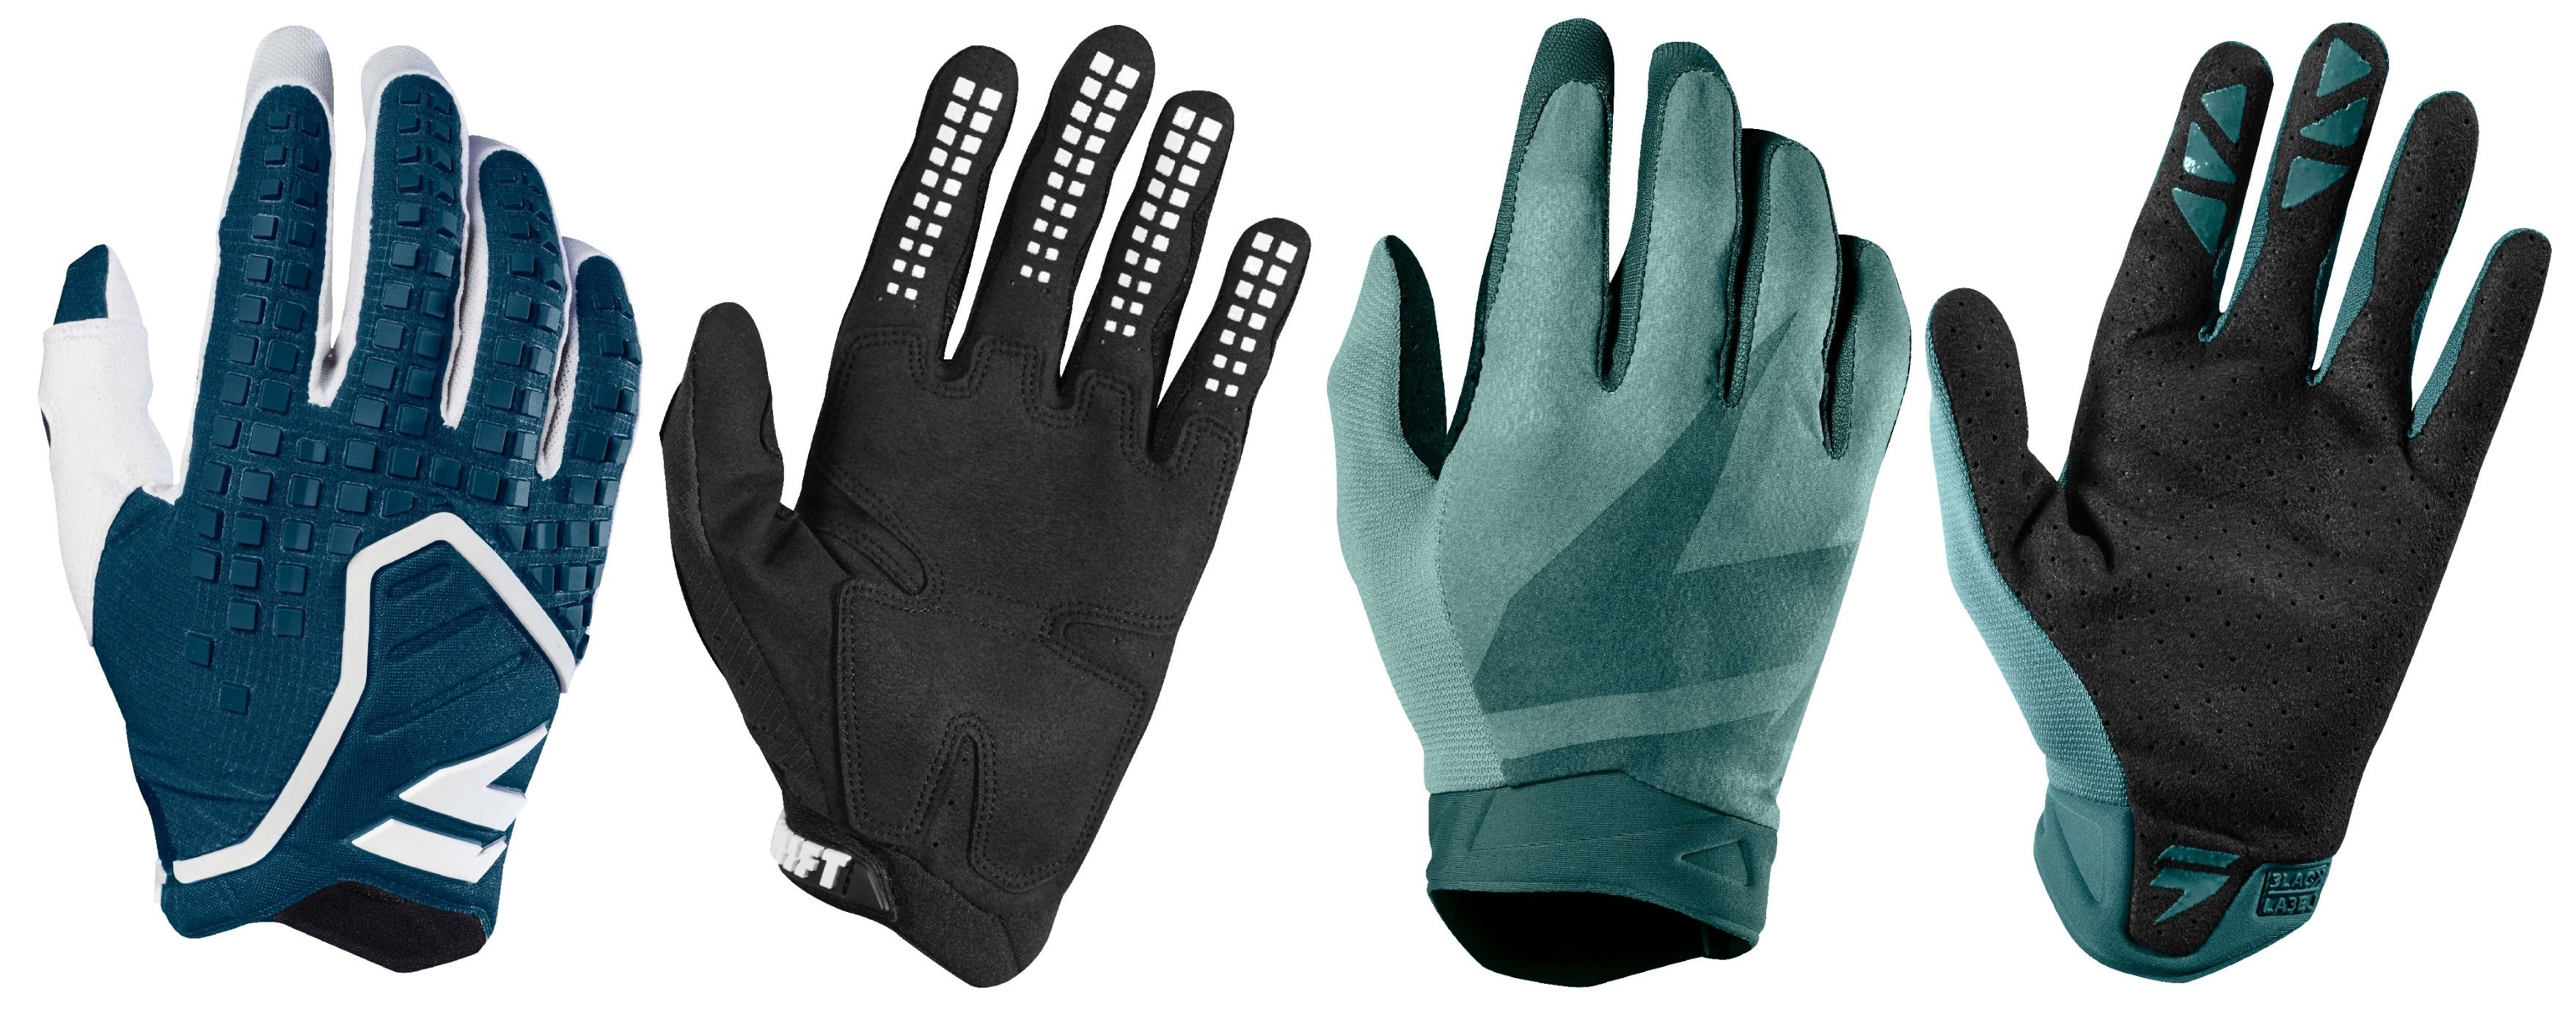 Shift MX Shift Black Label Pro and Air Glove